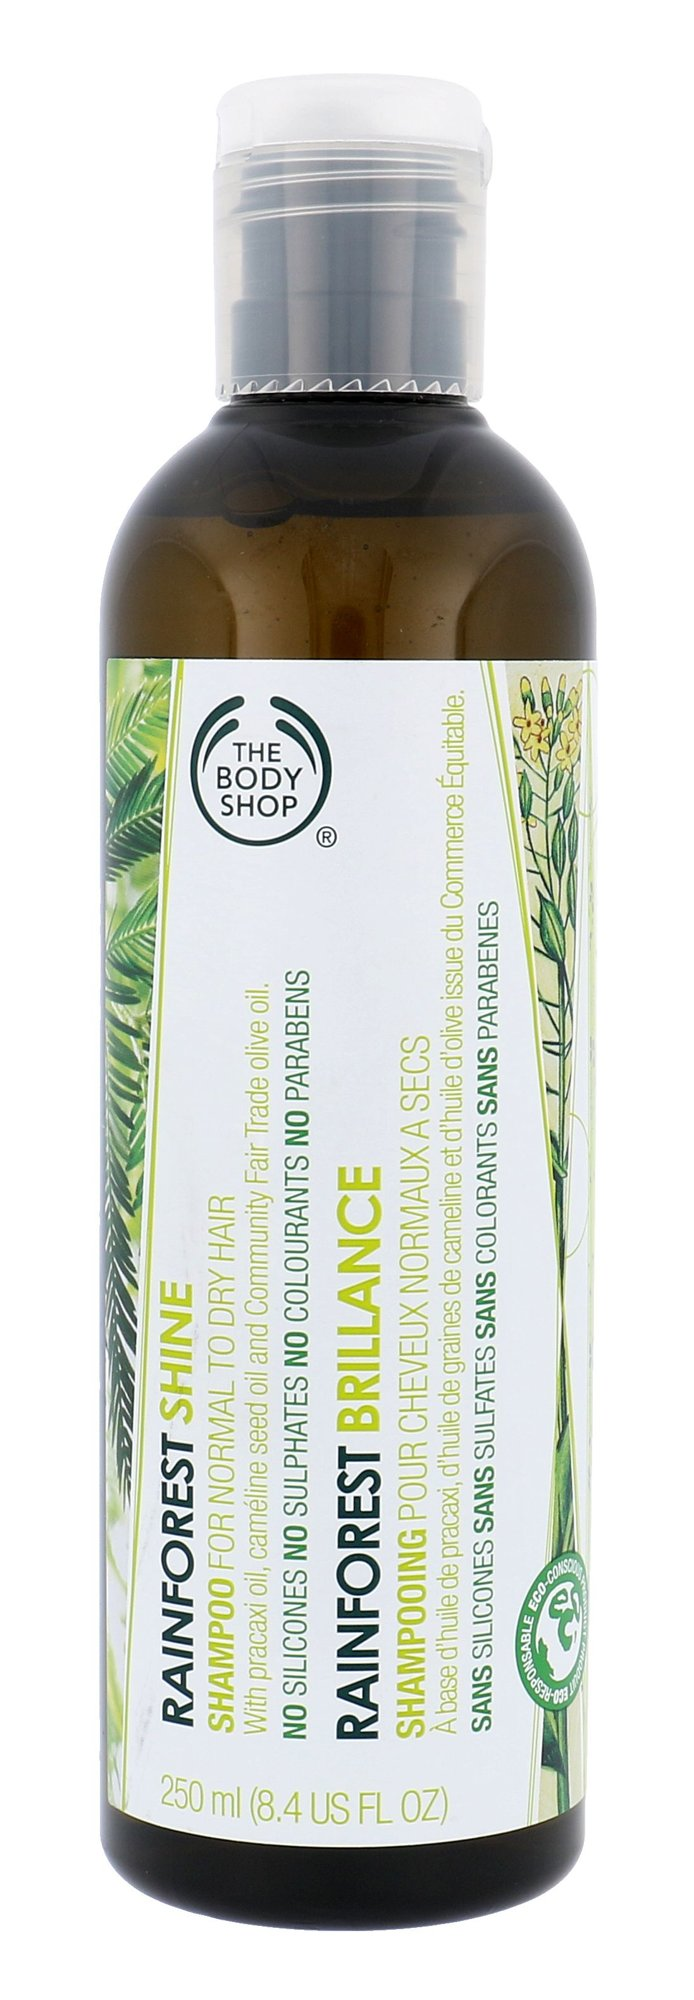 The Body Shop Rainforest Shine Shampoo